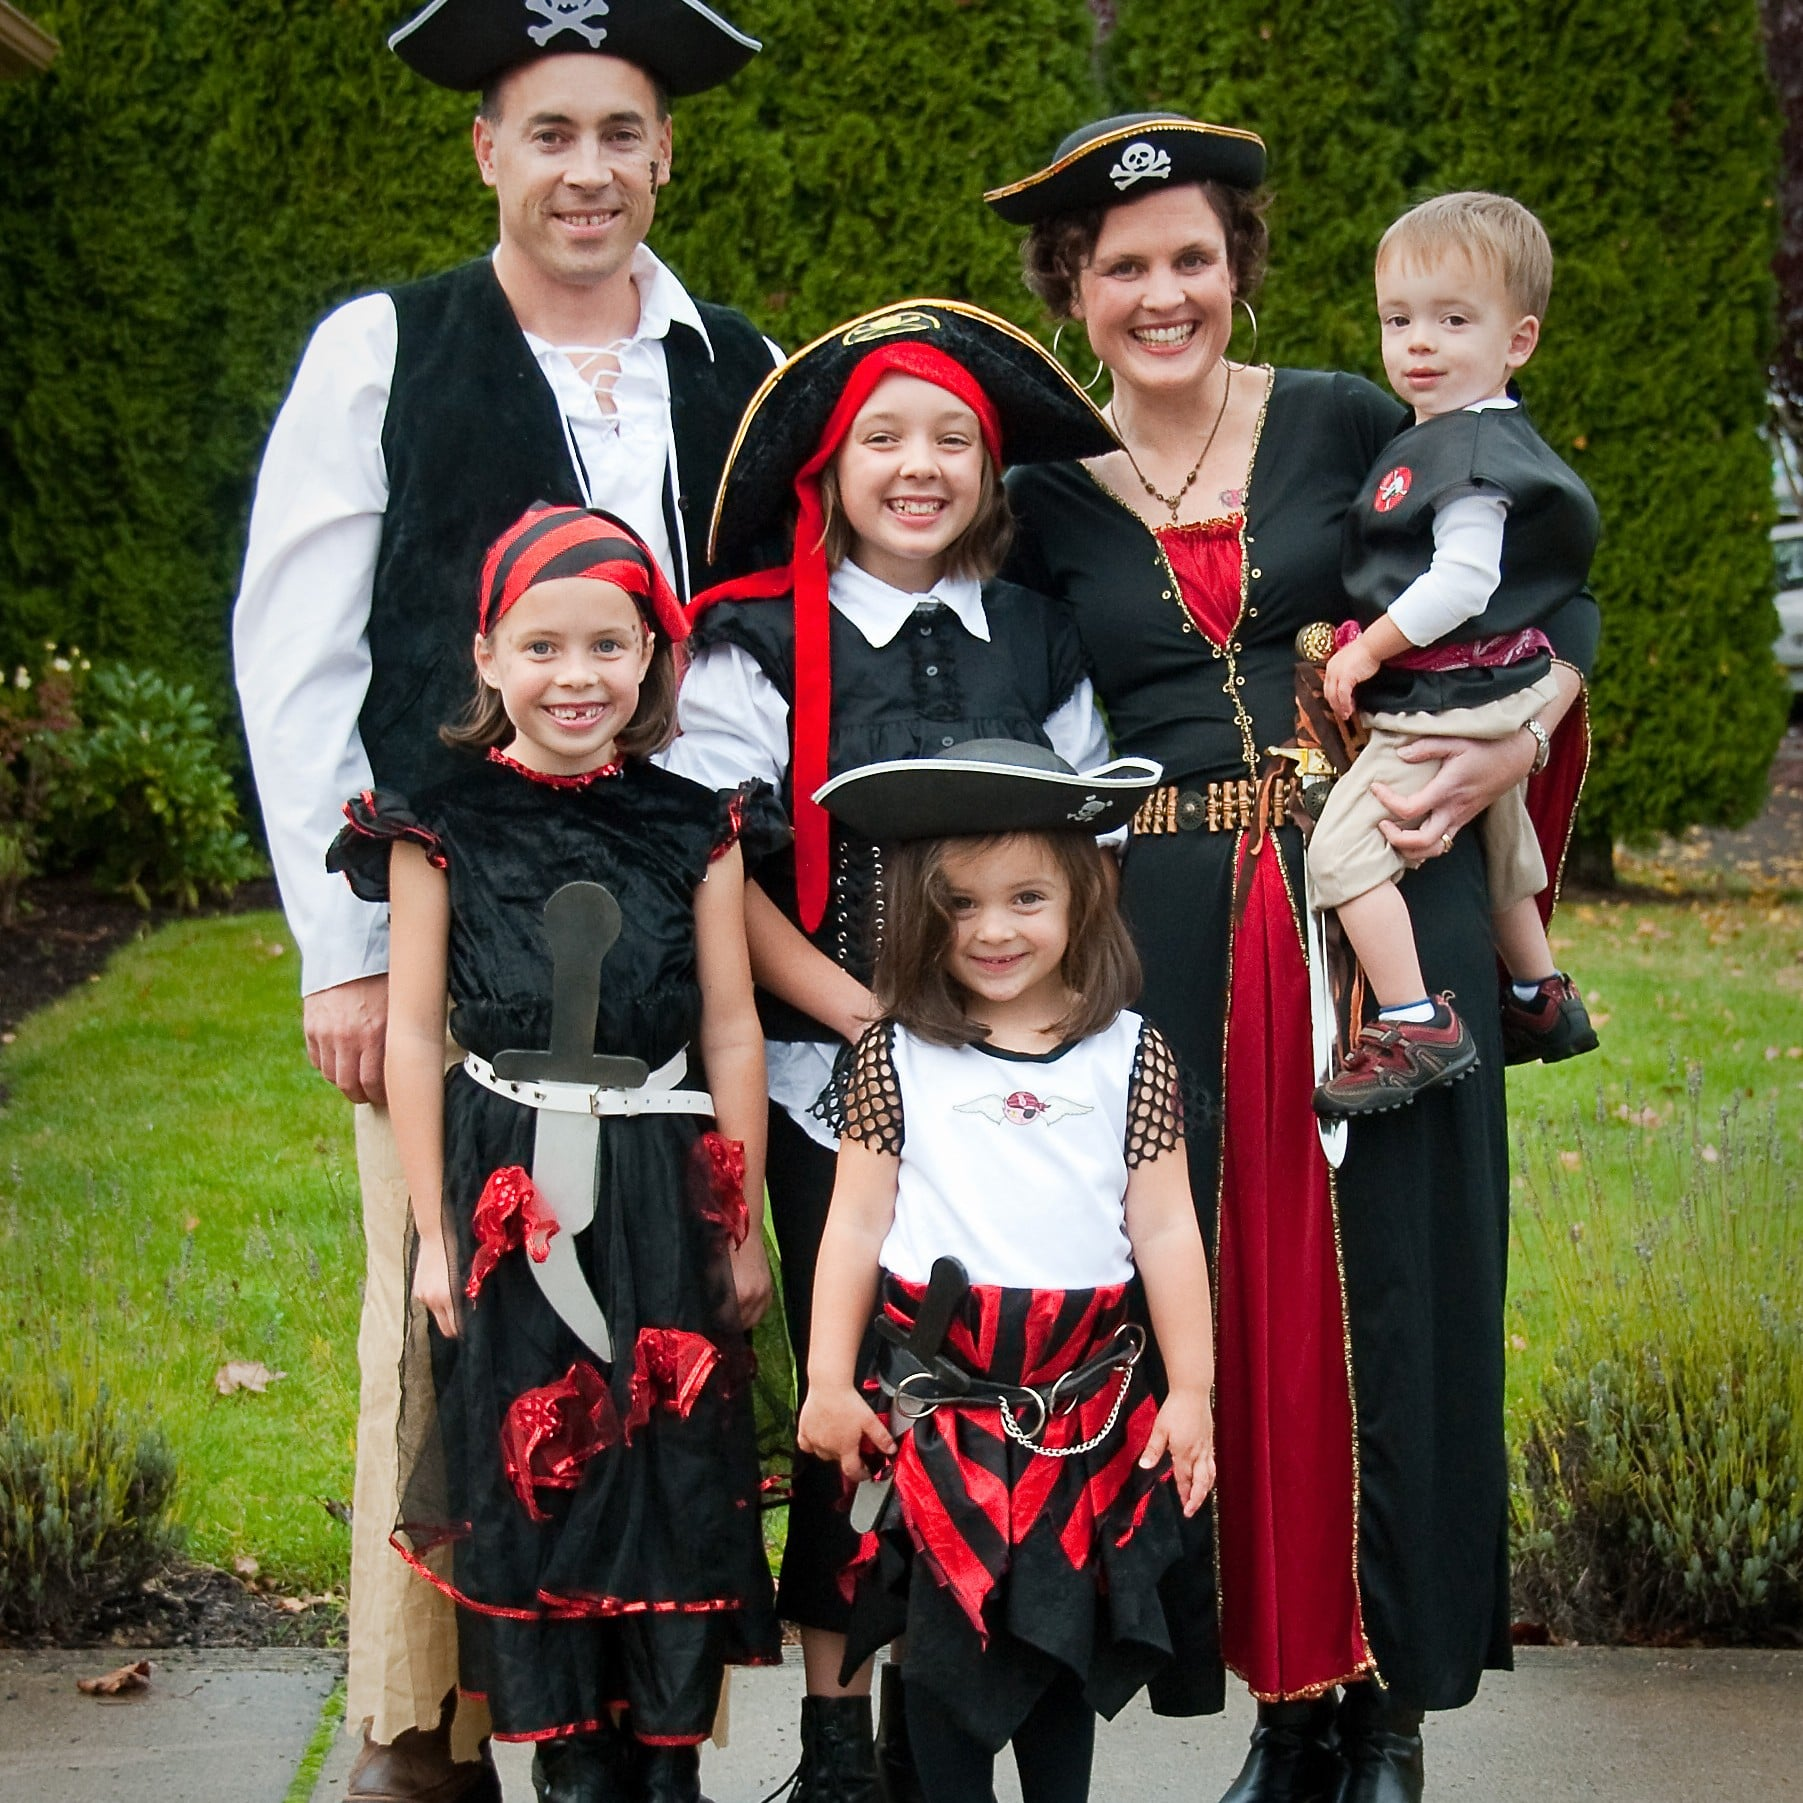 halloween costume ideas for the family | popsugar family